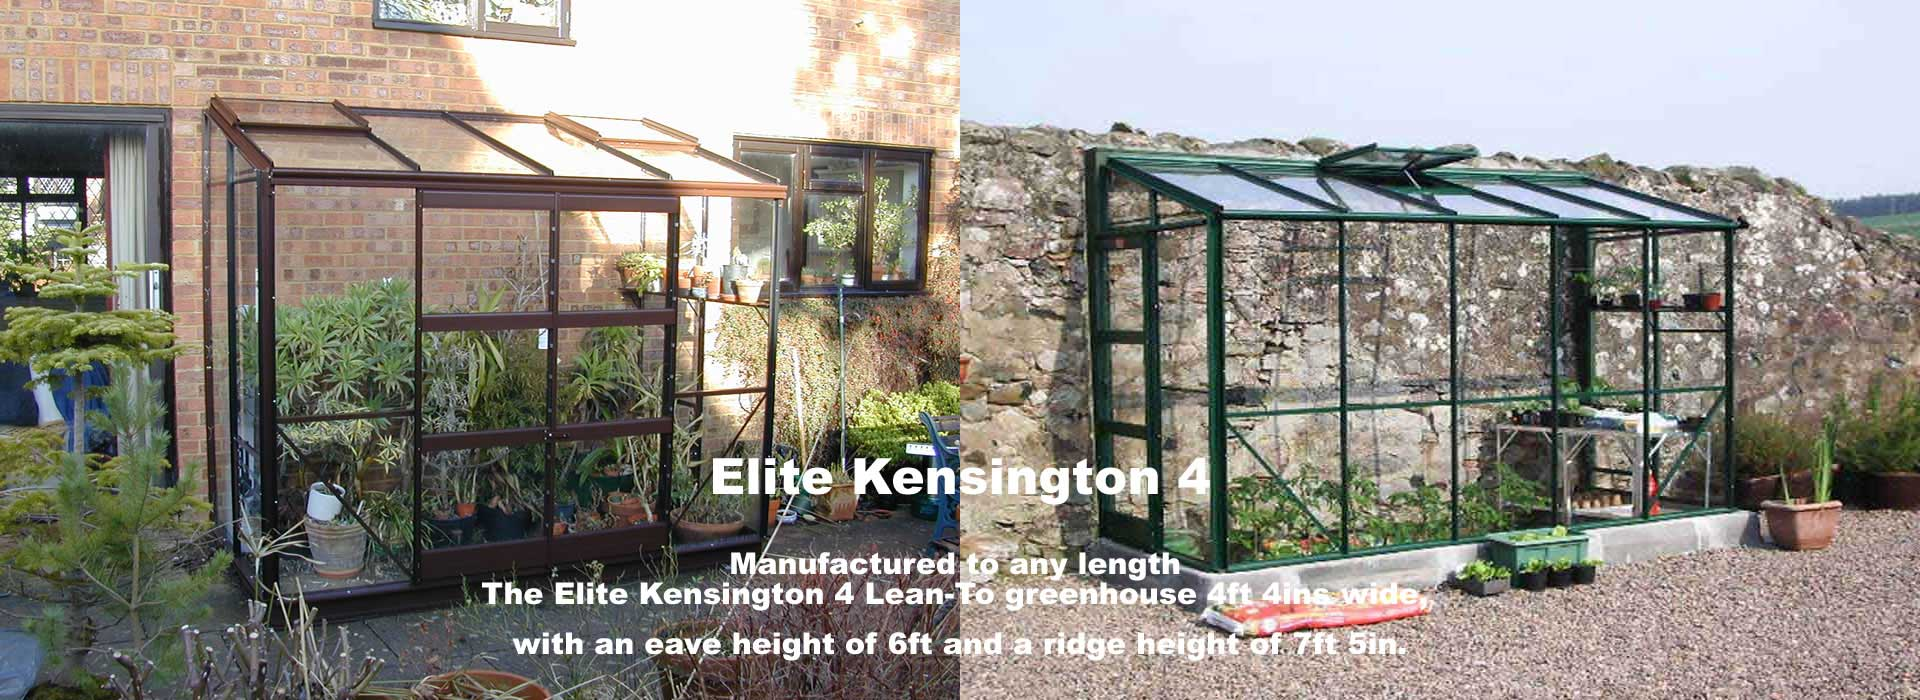 Elite Kensington 4 Lean-To Greenhouses